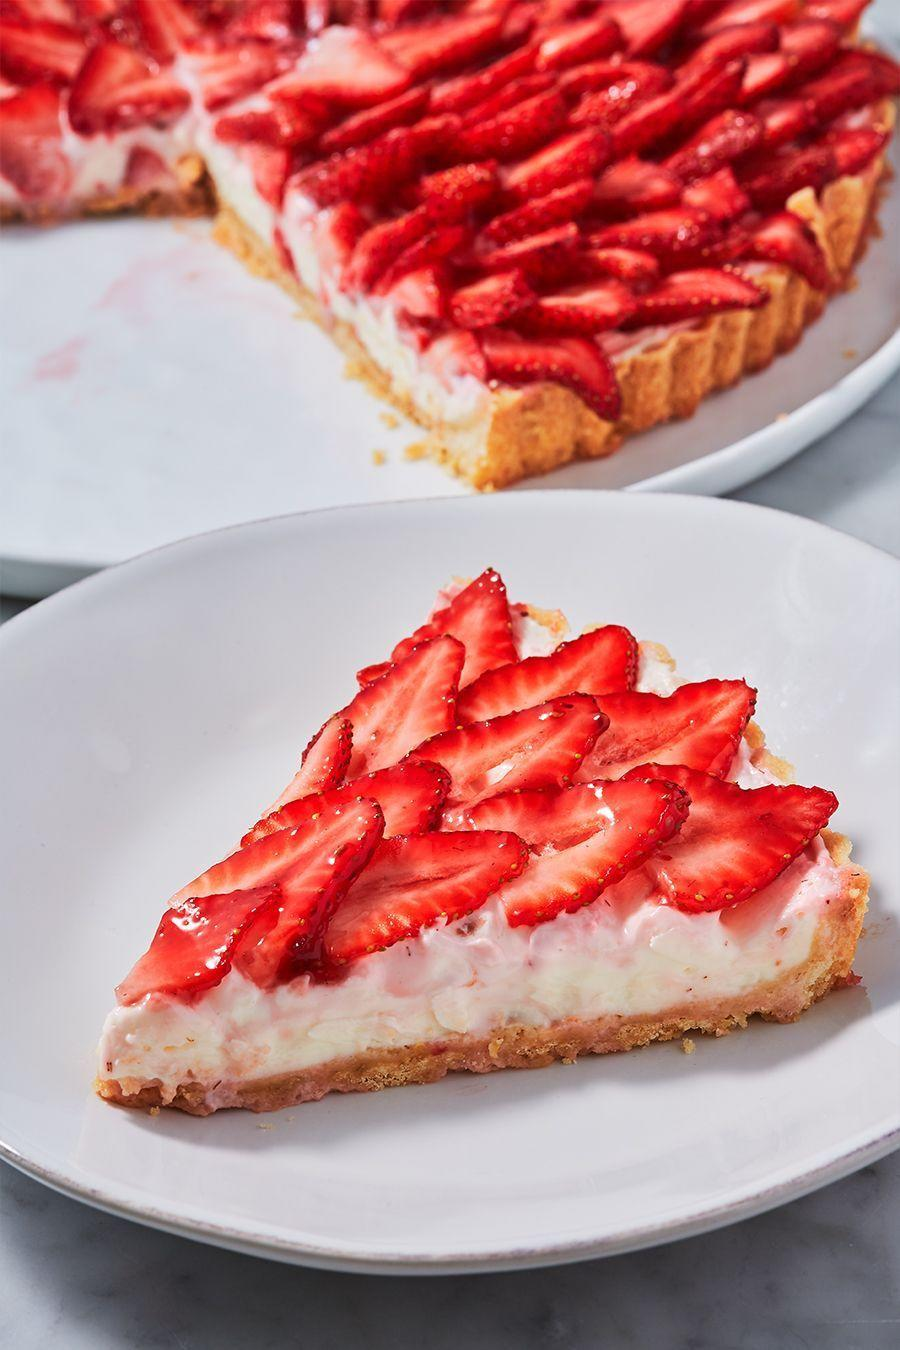 """<p>Nothing says spring quite like this easy strawberry tart. The crust is a simple no-chill version of a pie crust that we are obsessed with.</p><p>Get the <a href=""""http://www.delish.com/uk/cooking/recipes/a32484927/strawberry-tart-recipe/"""" rel=""""nofollow noopener"""" target=""""_blank"""" data-ylk=""""slk:Strawberry Tart"""" class=""""link rapid-noclick-resp"""">Strawberry Tart</a> recipe.</p>"""